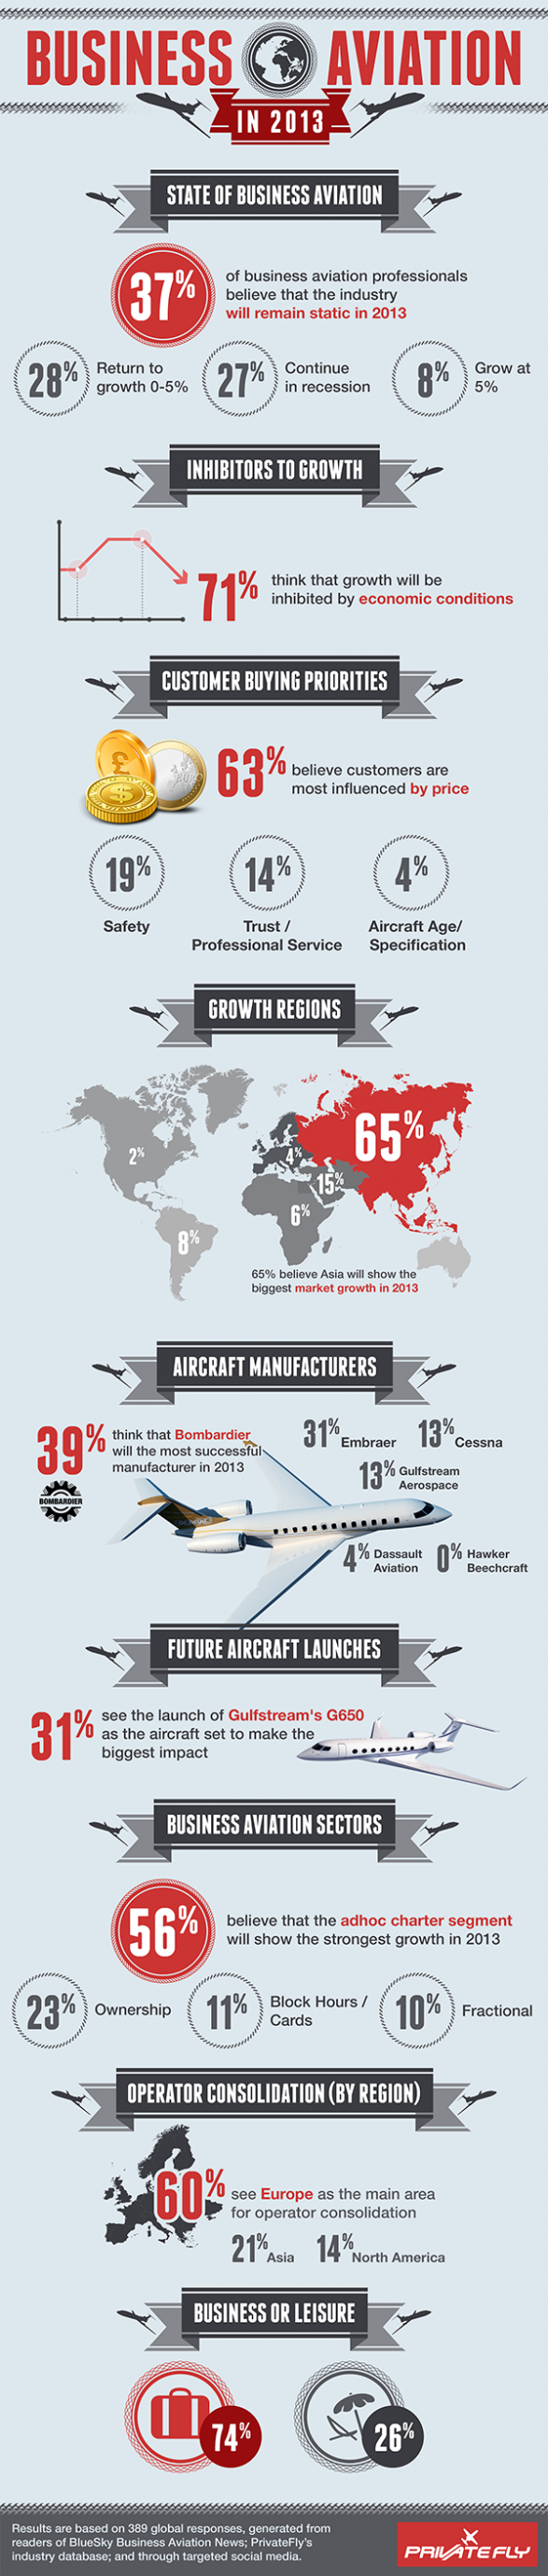 Business Aviation in 2013